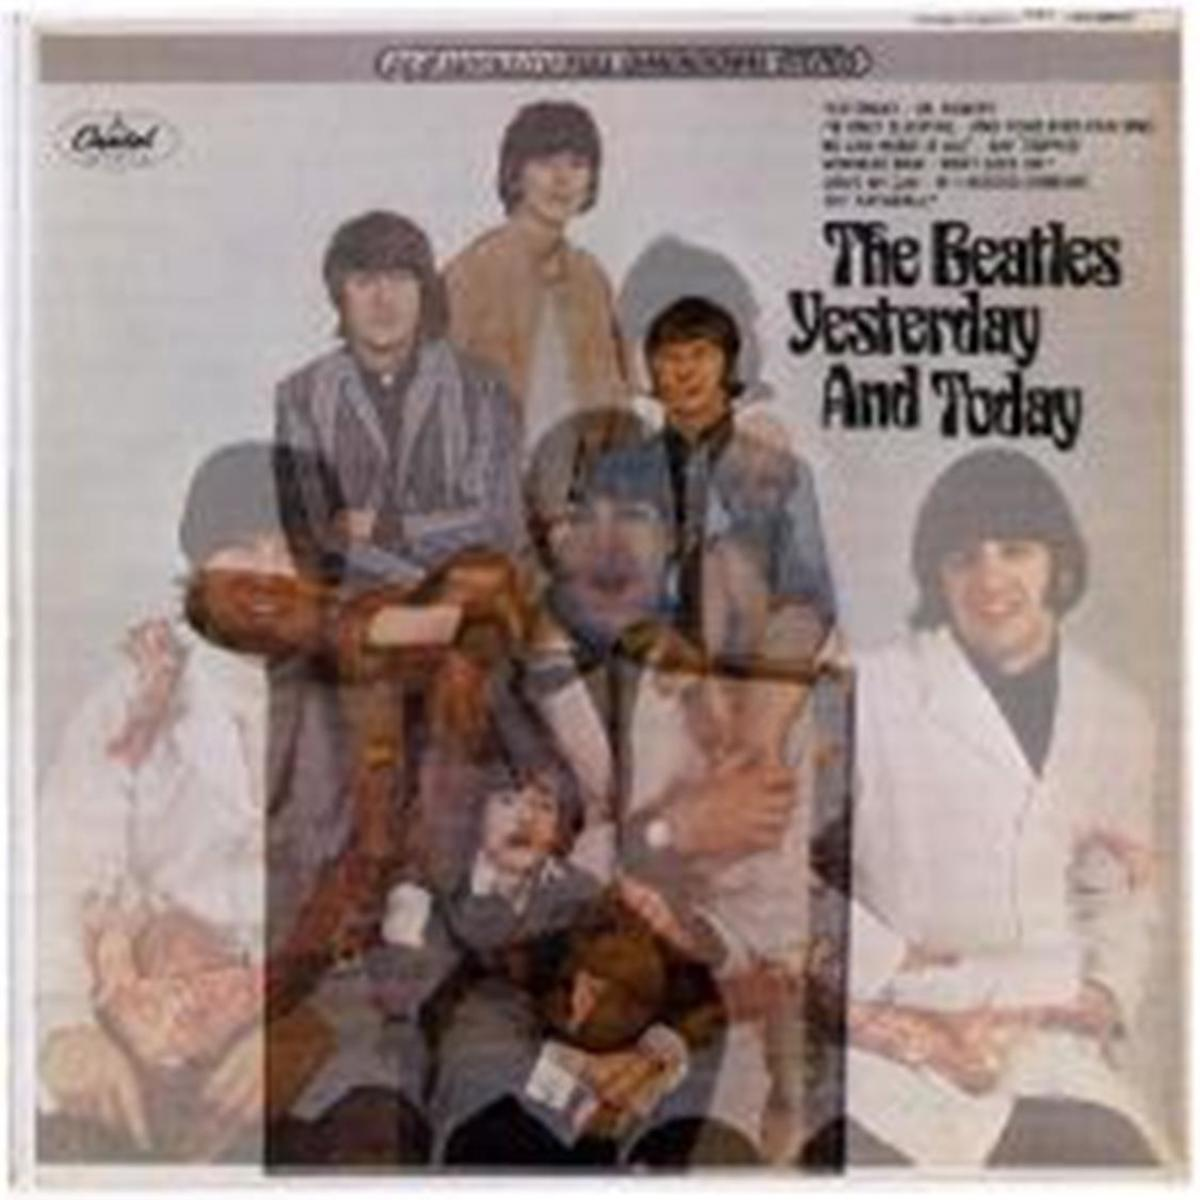 What You Need to Know About the Rare Beatles Butcher Cover Album - Yesterday and Today